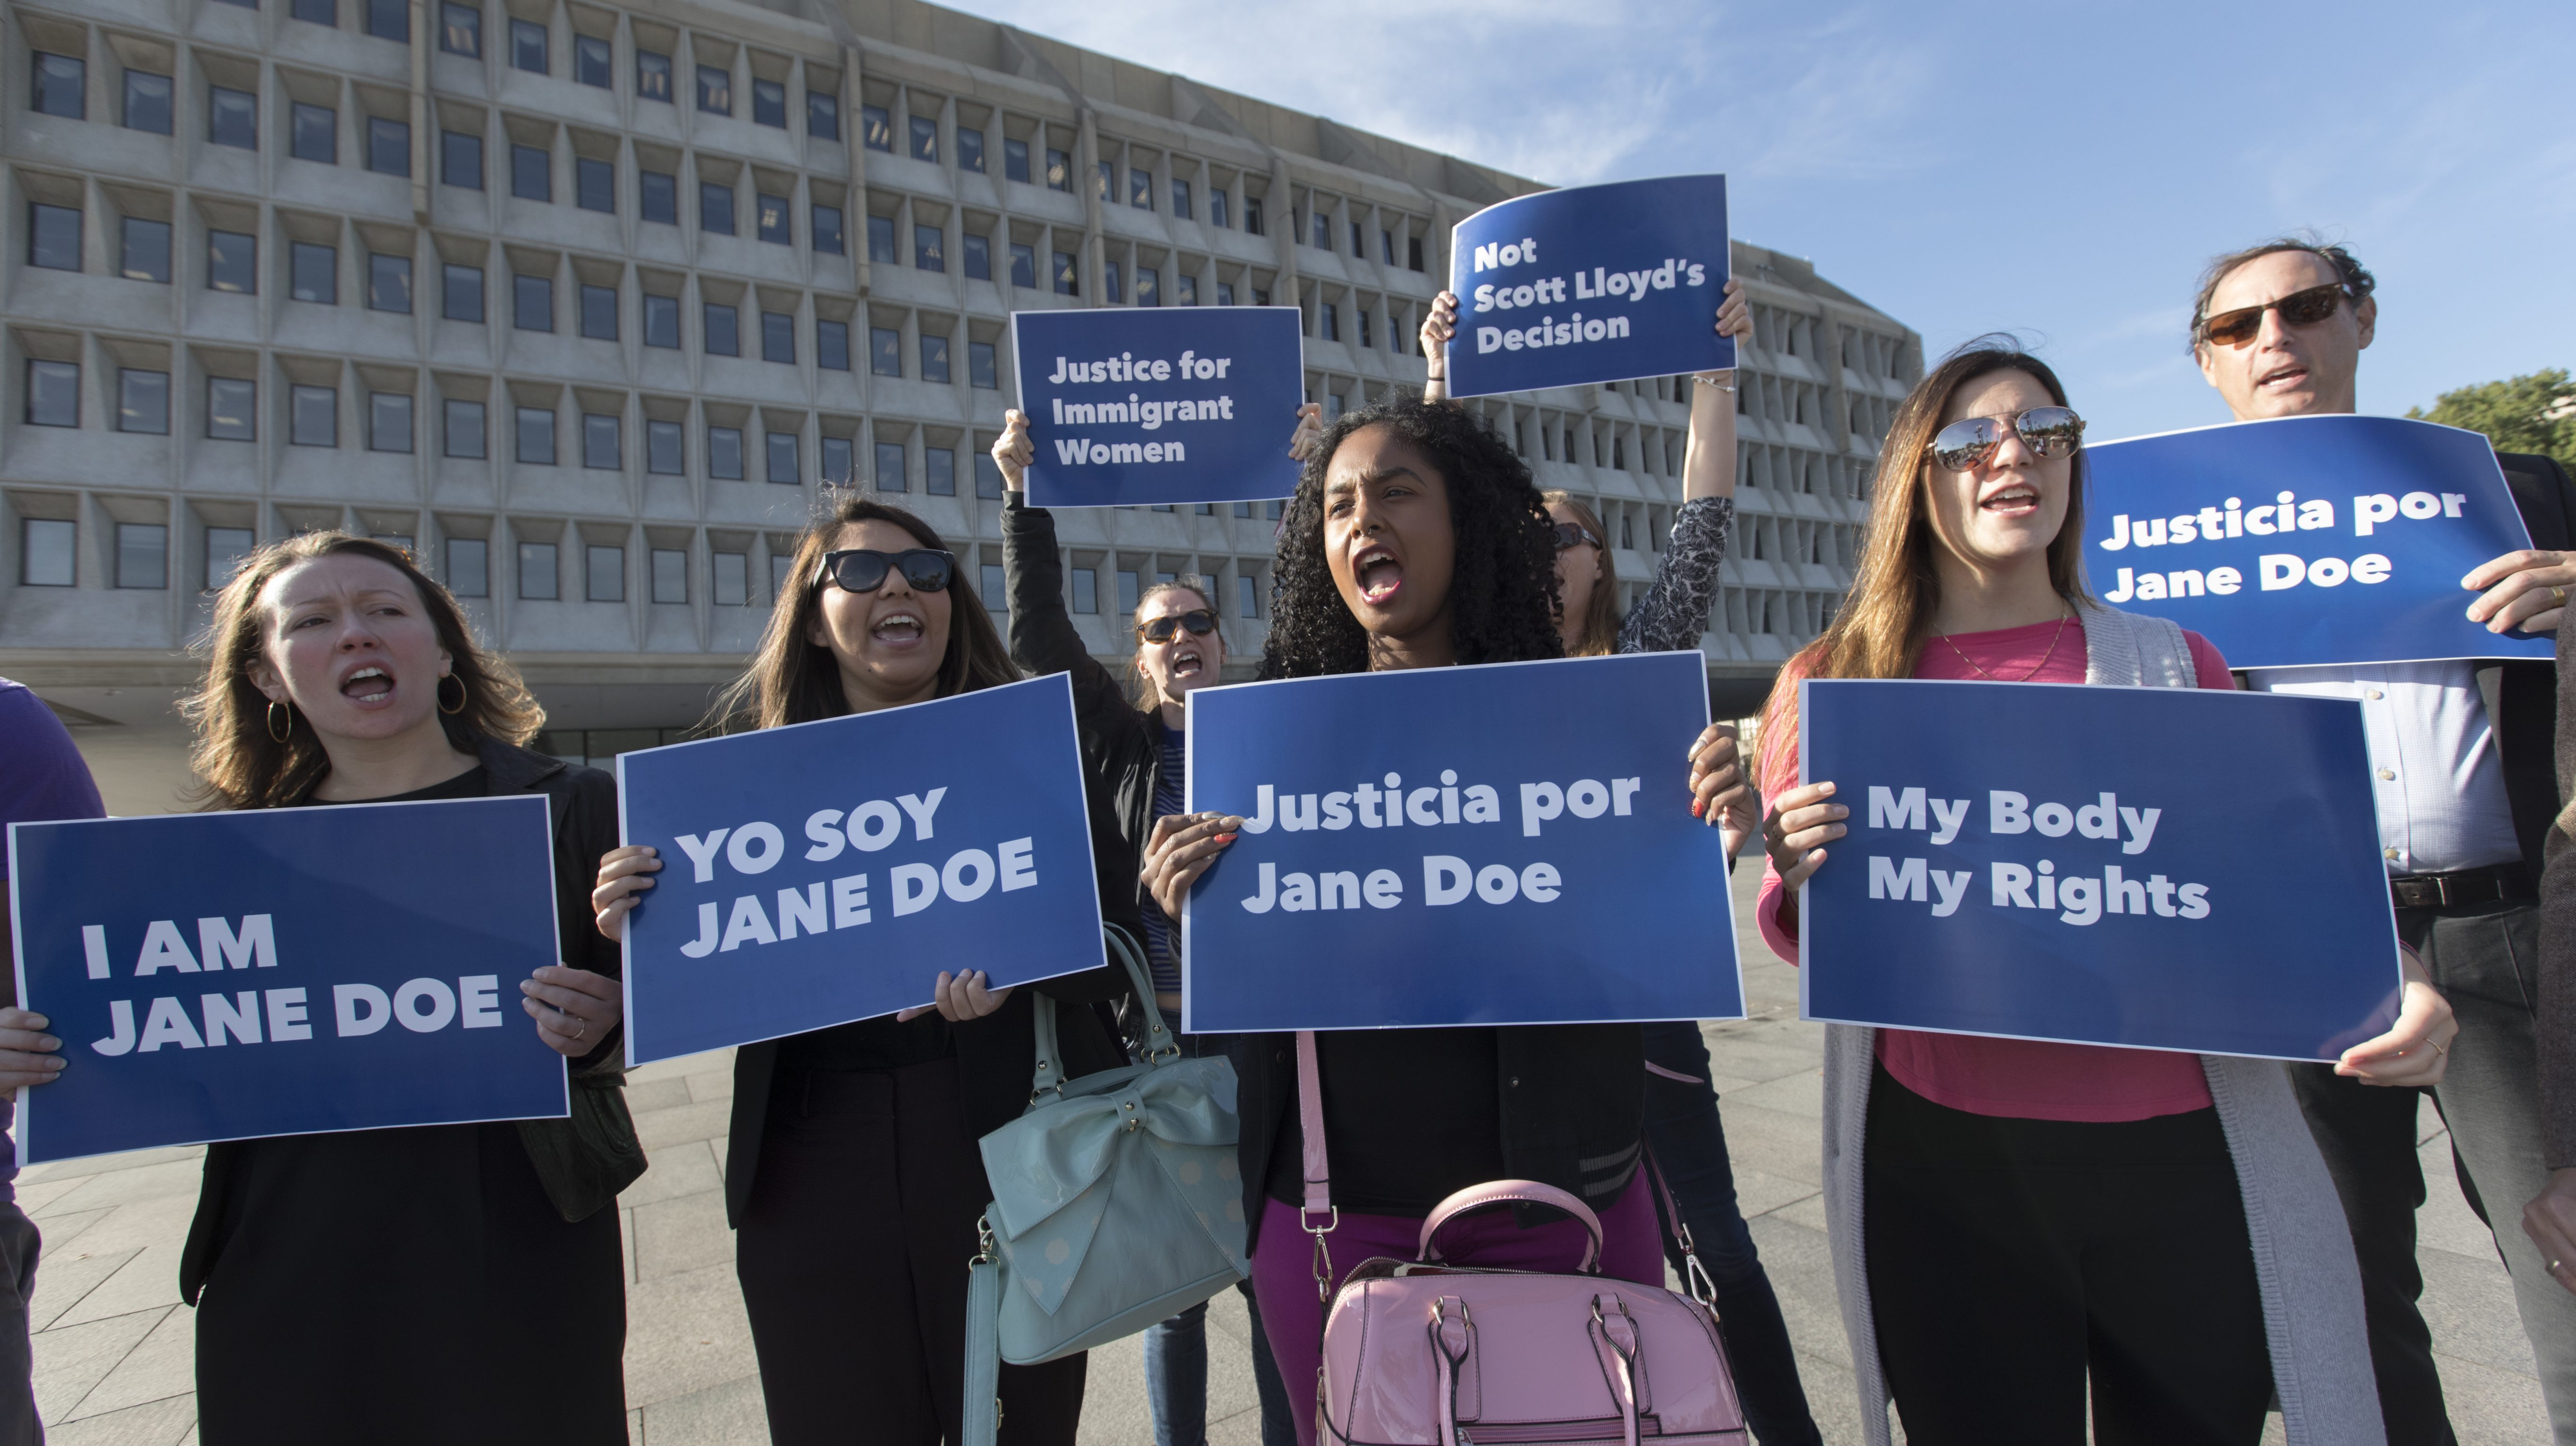 Activists with Planned Parenthood demonstrate in support of a pregnant 17-year-old being held in a Texas facility for unaccompanied immigrant children to obtain an abortion, outside of the Department of Health and Human Services in Washington, Friday, Oct. 20, 2017. (AP Photo/J. Scott Applewhite)